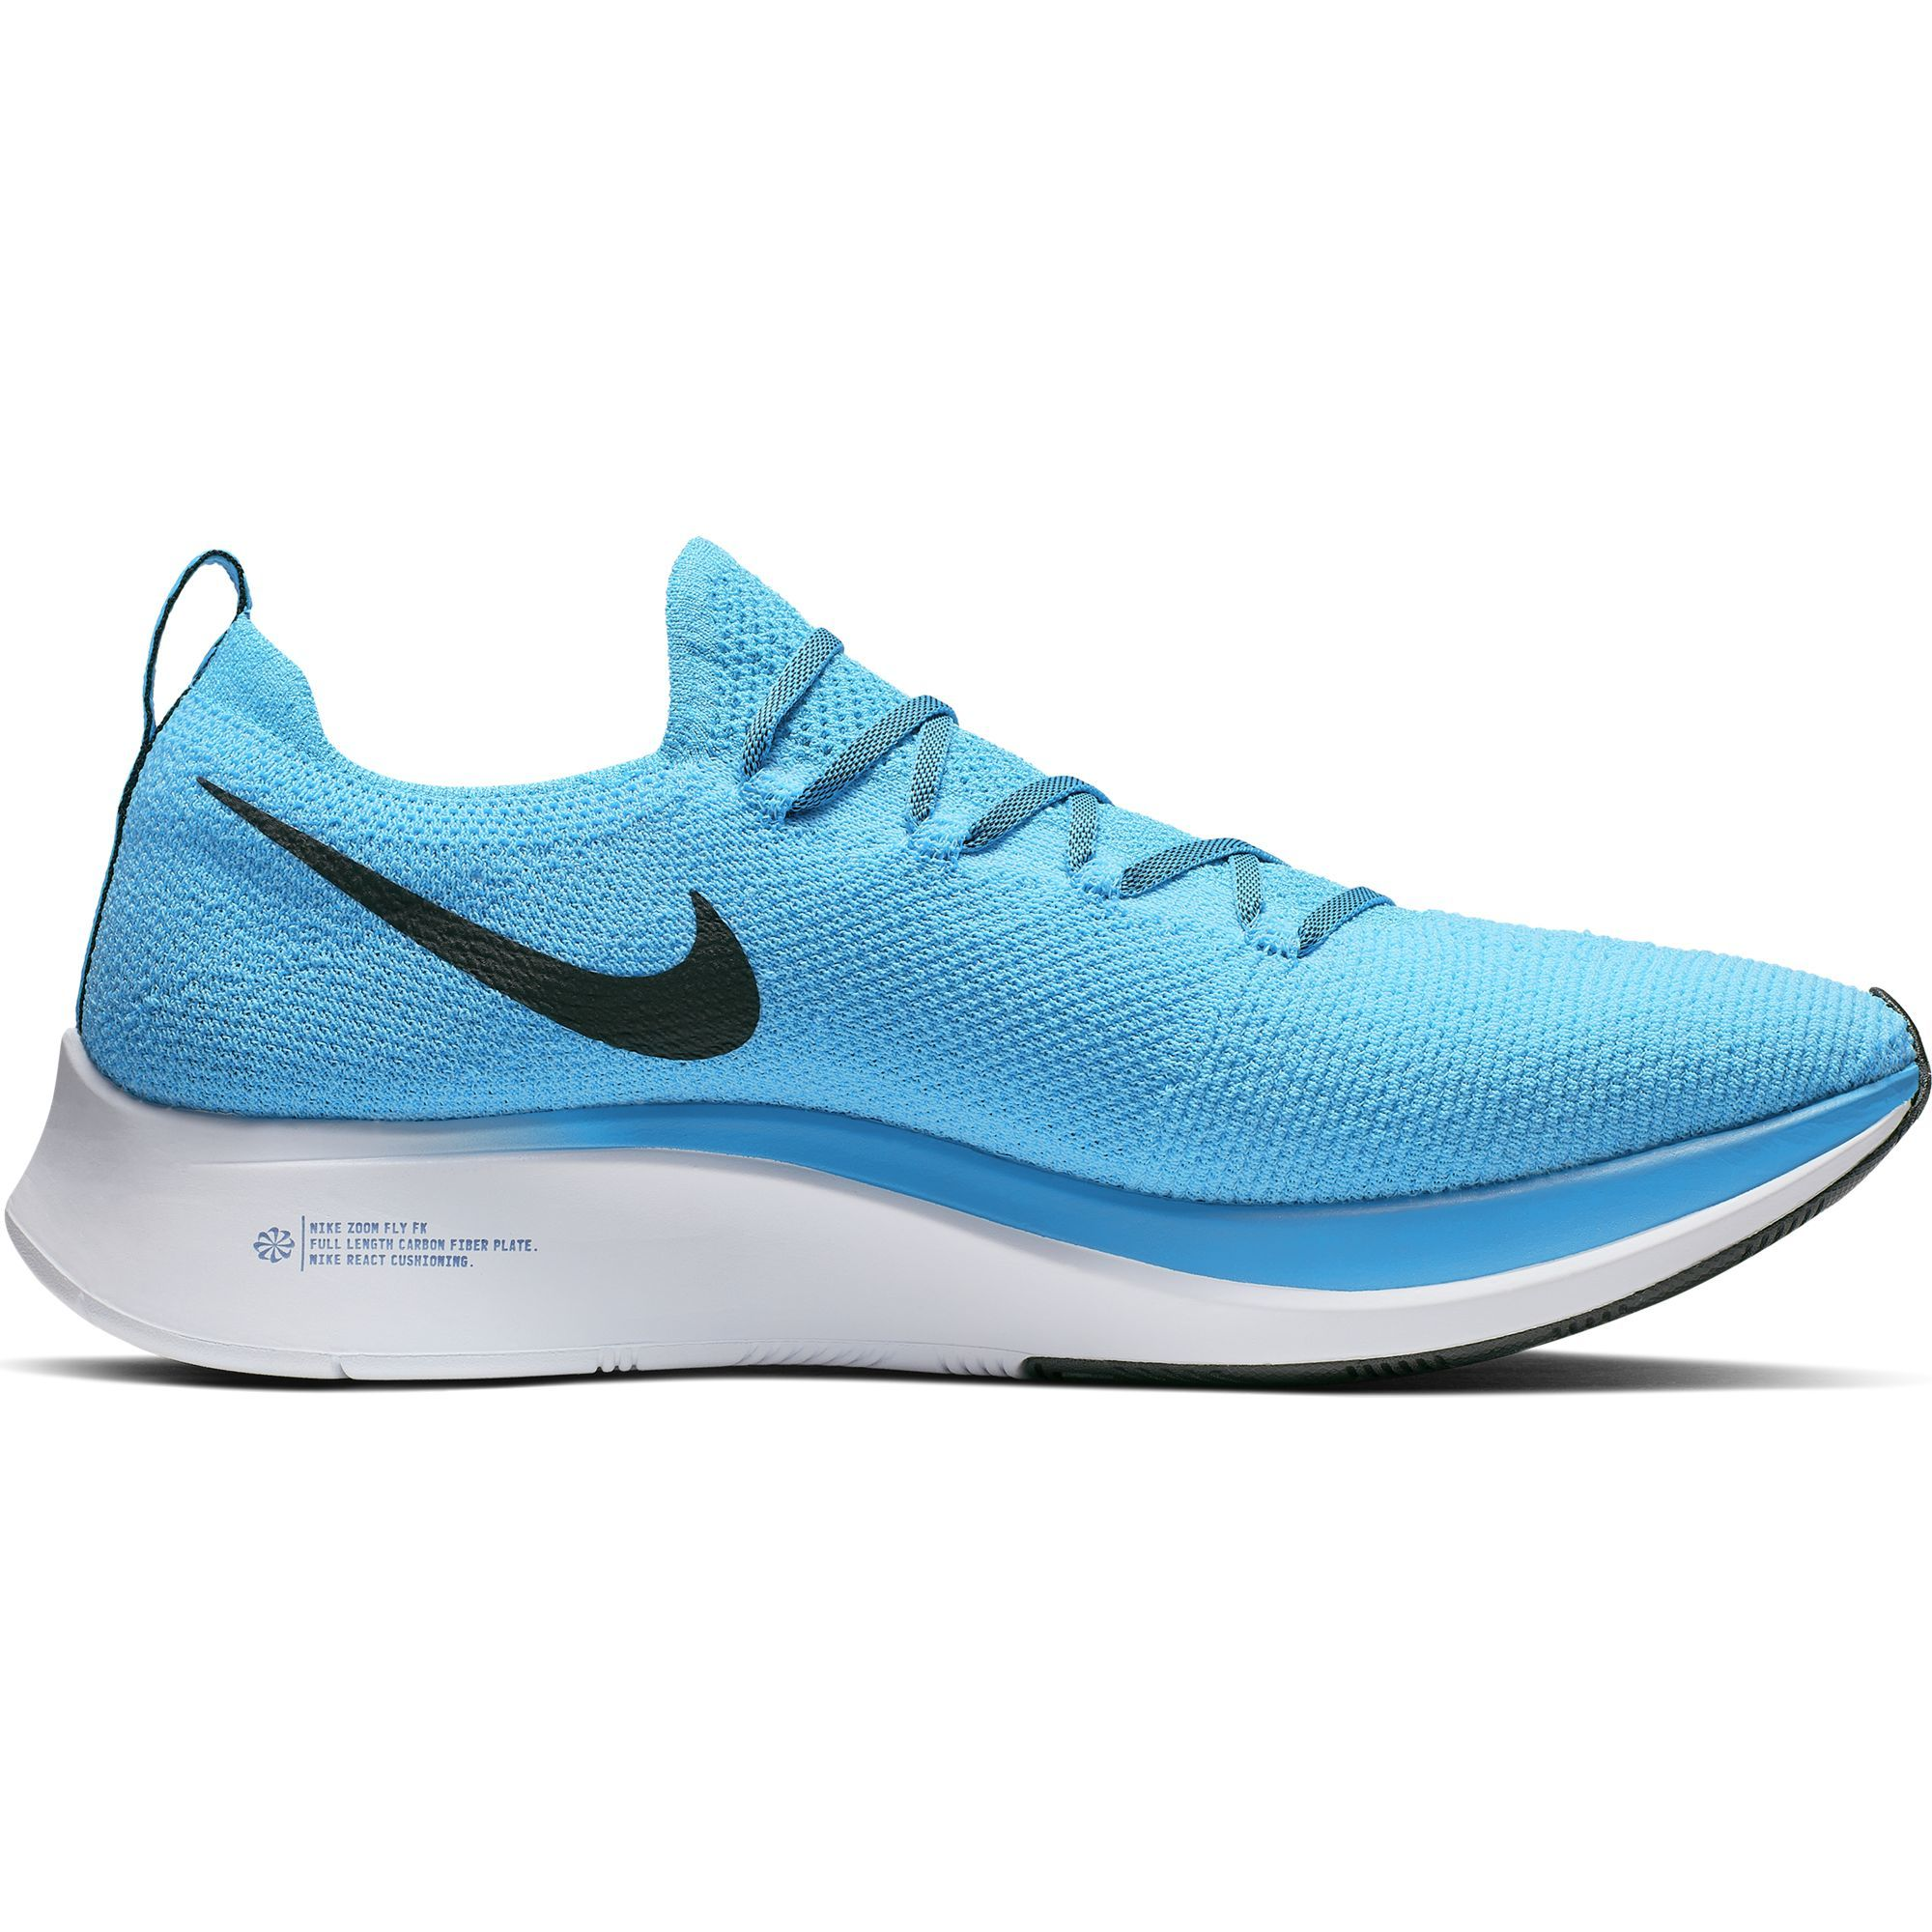 Nike Zoom Fly Flyknit in Blau